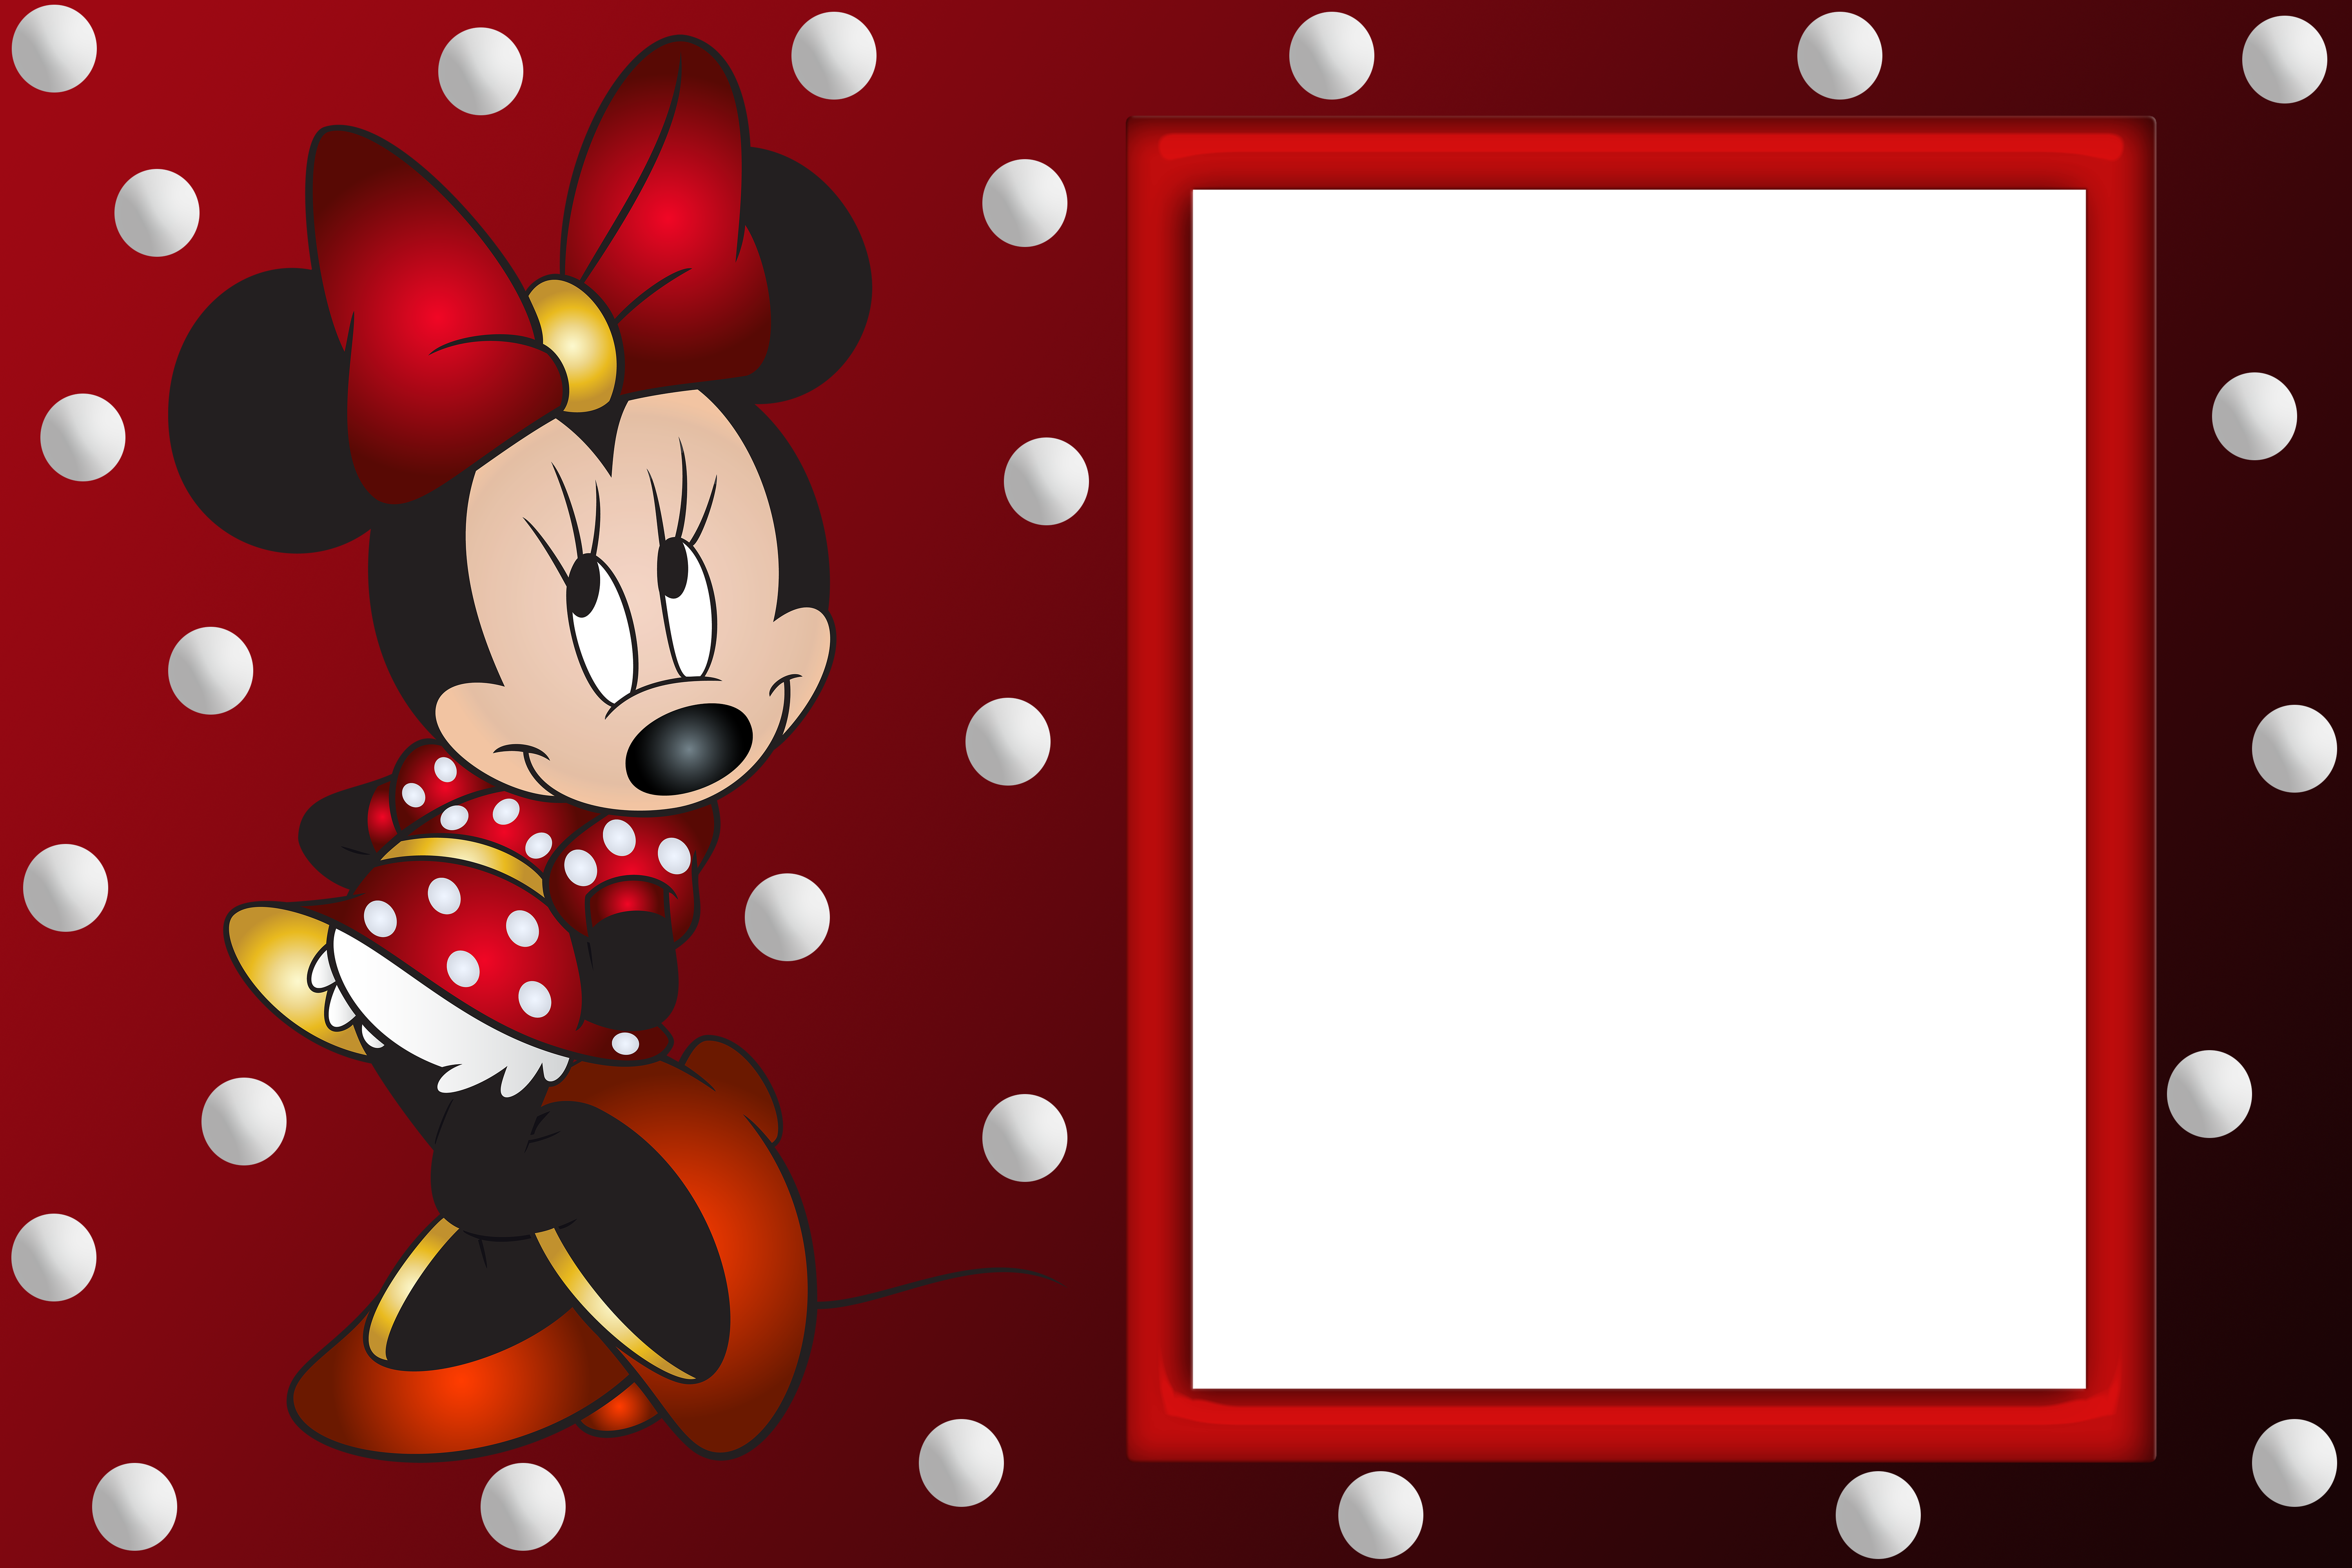 Transparent png frame gallery. Clipart glasses minnie mouse